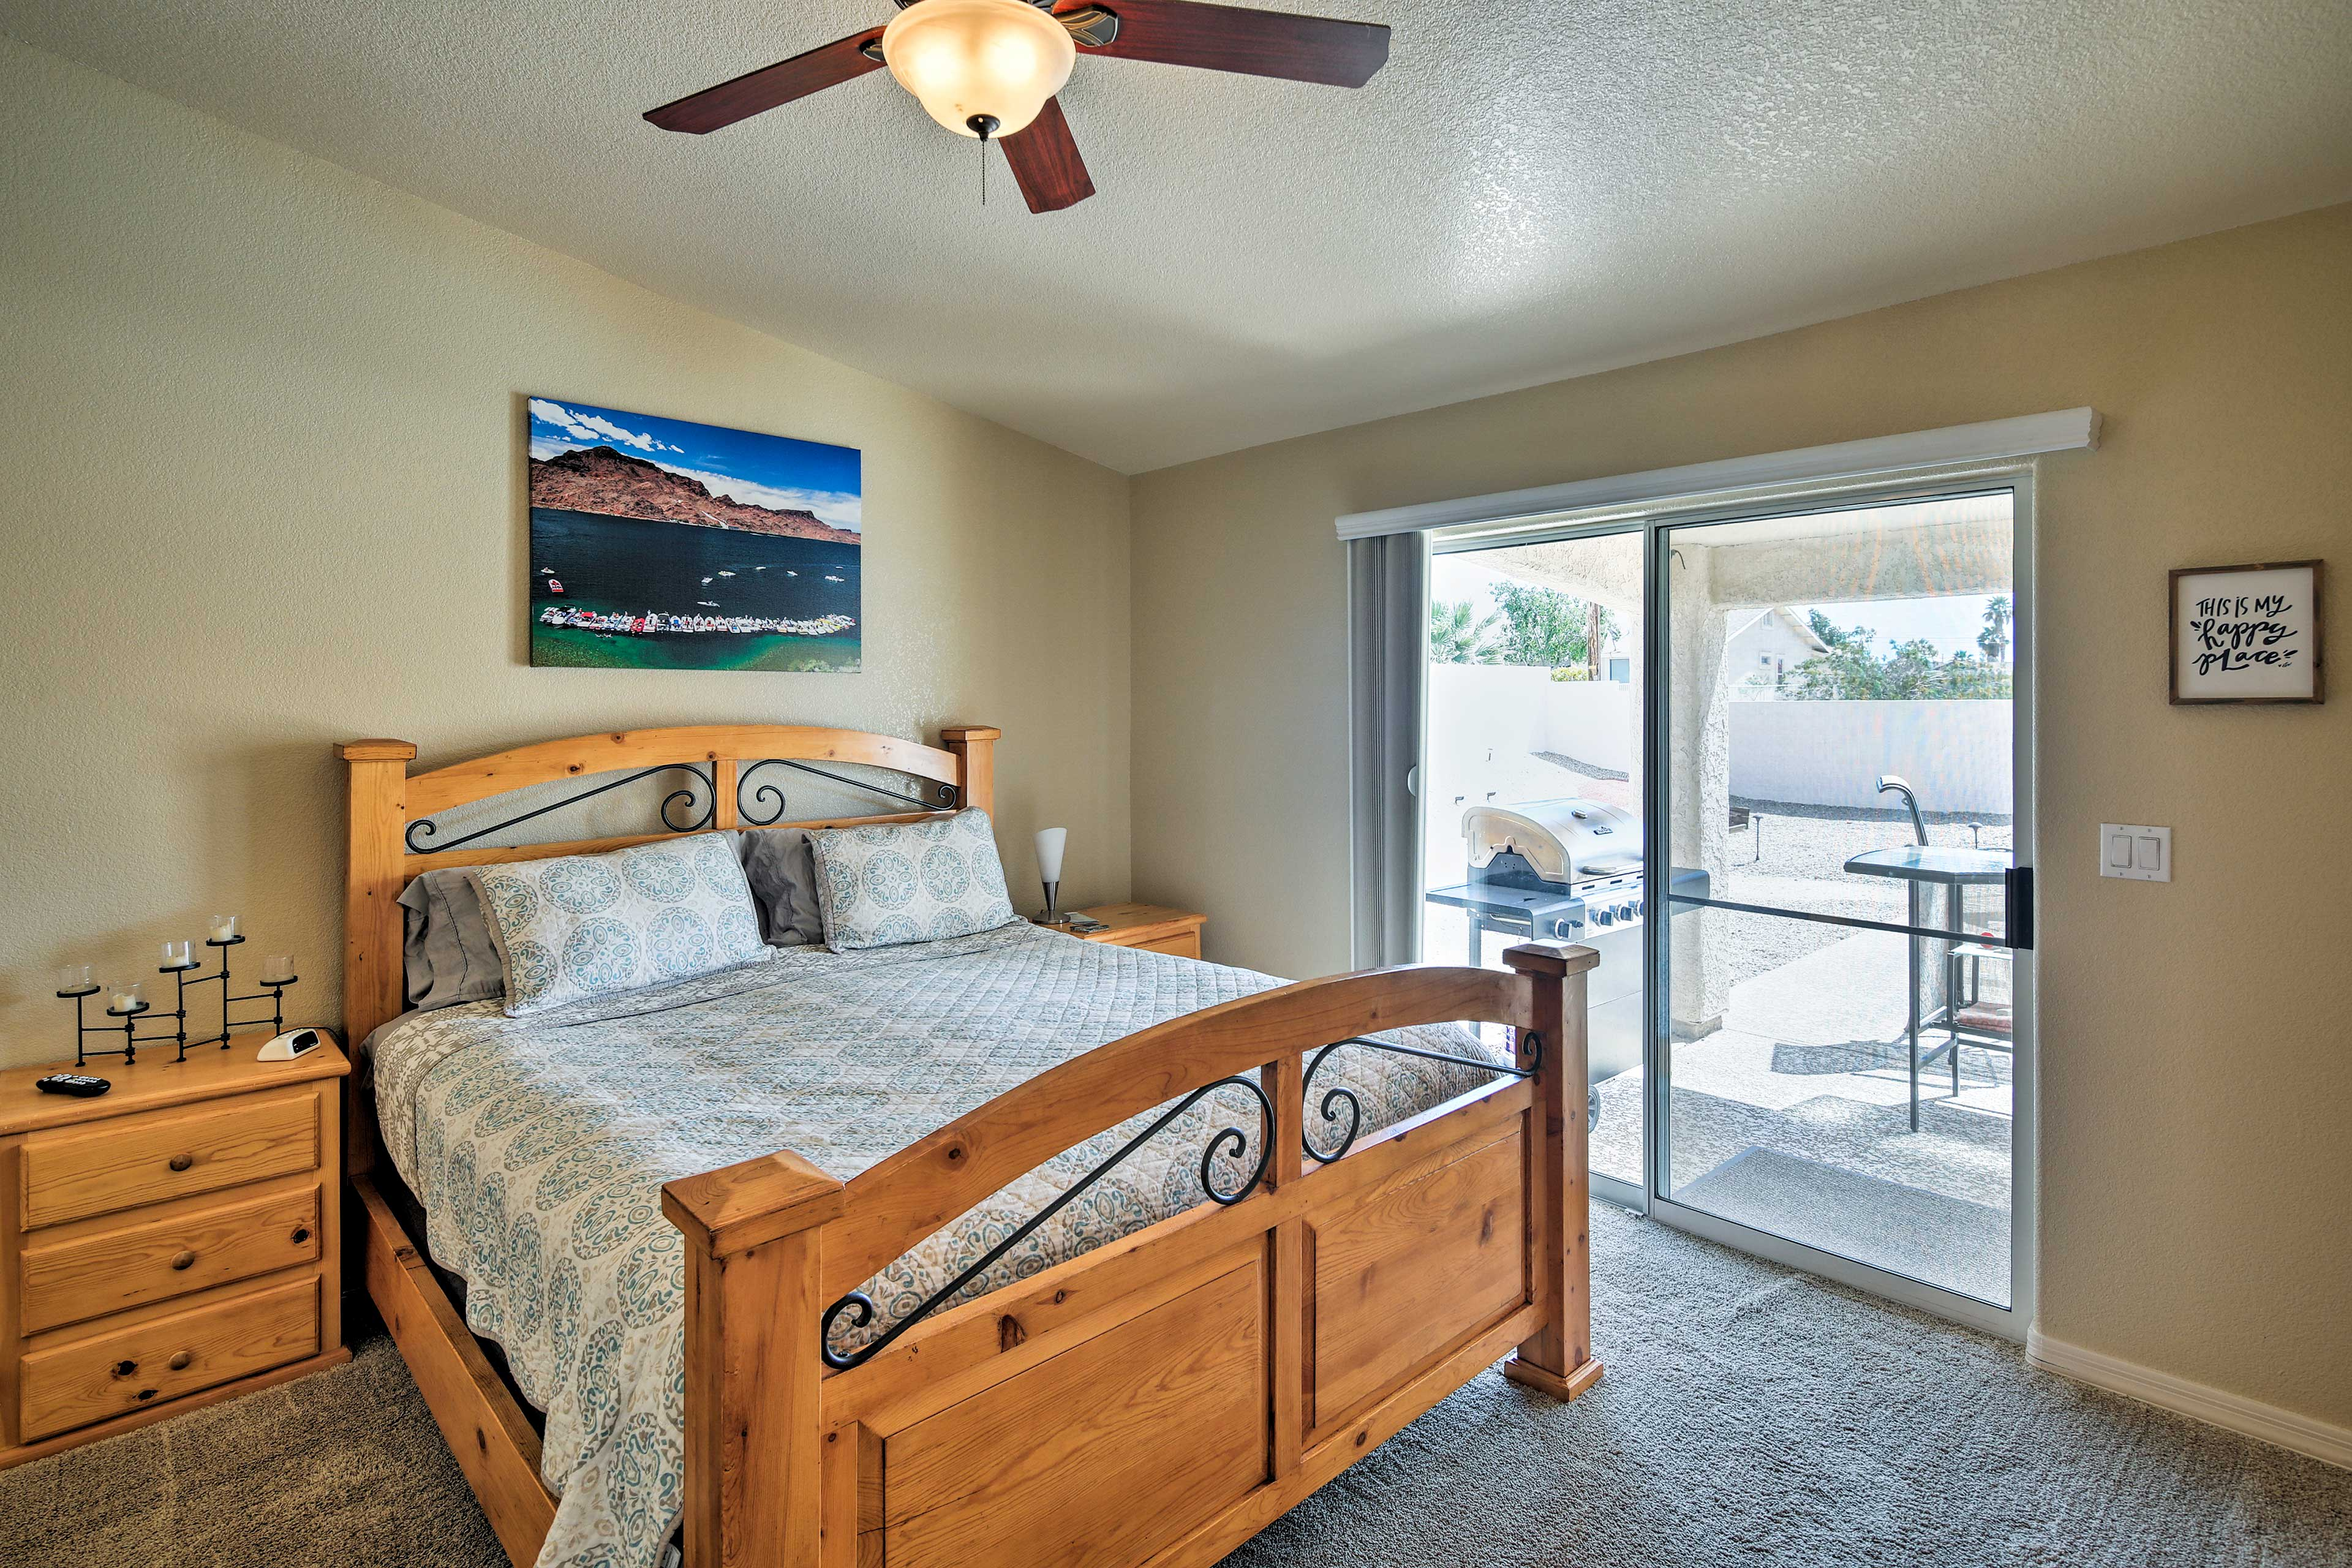 The master bedroom boasts a cozy king bed and private patio entrance.